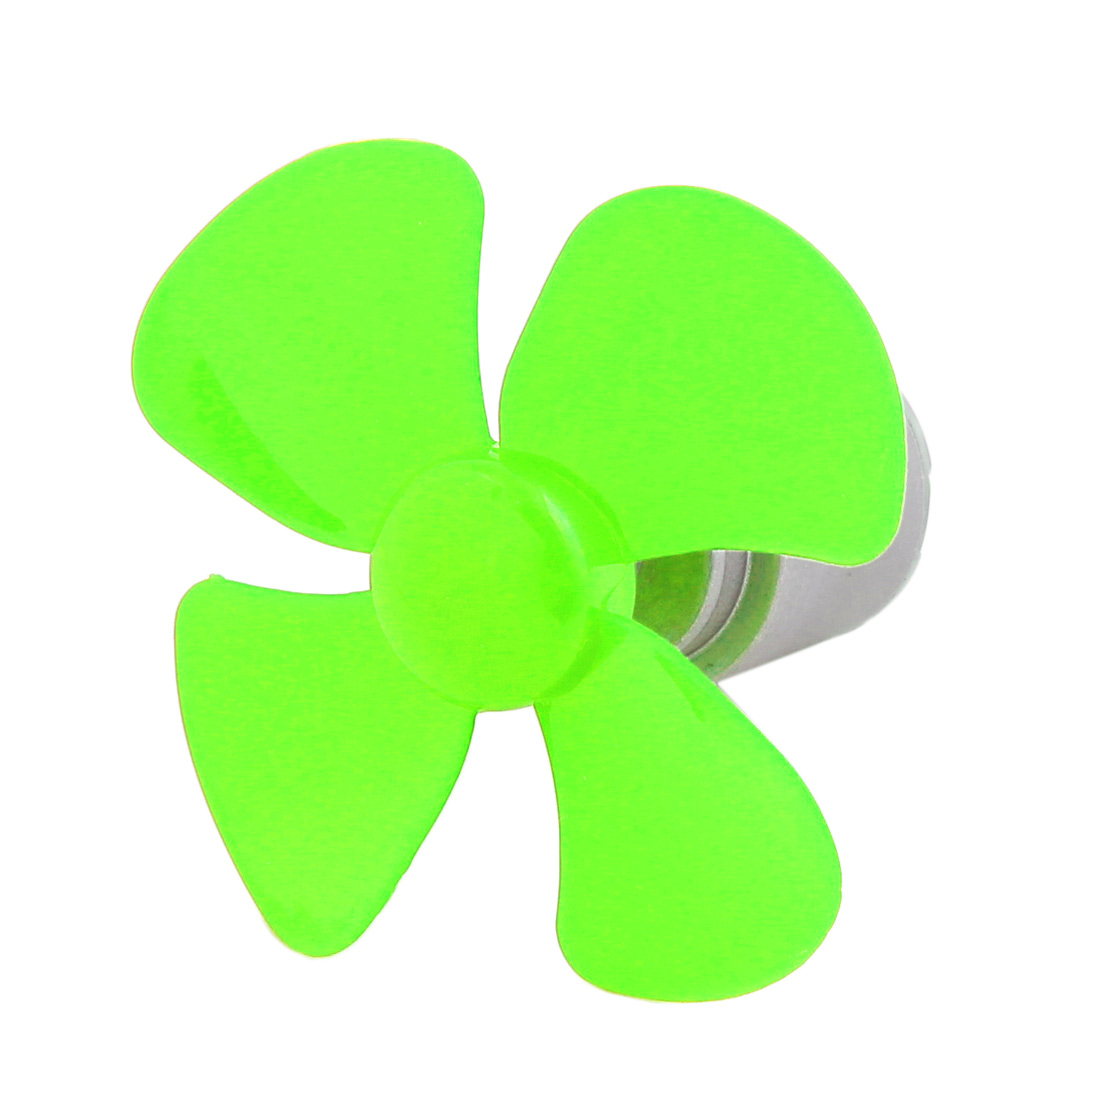 DC 3V 0.13A 11000RPM Green Strong Force Motor 4 Vanes 56mm Dia Propeller for RC Aircraft